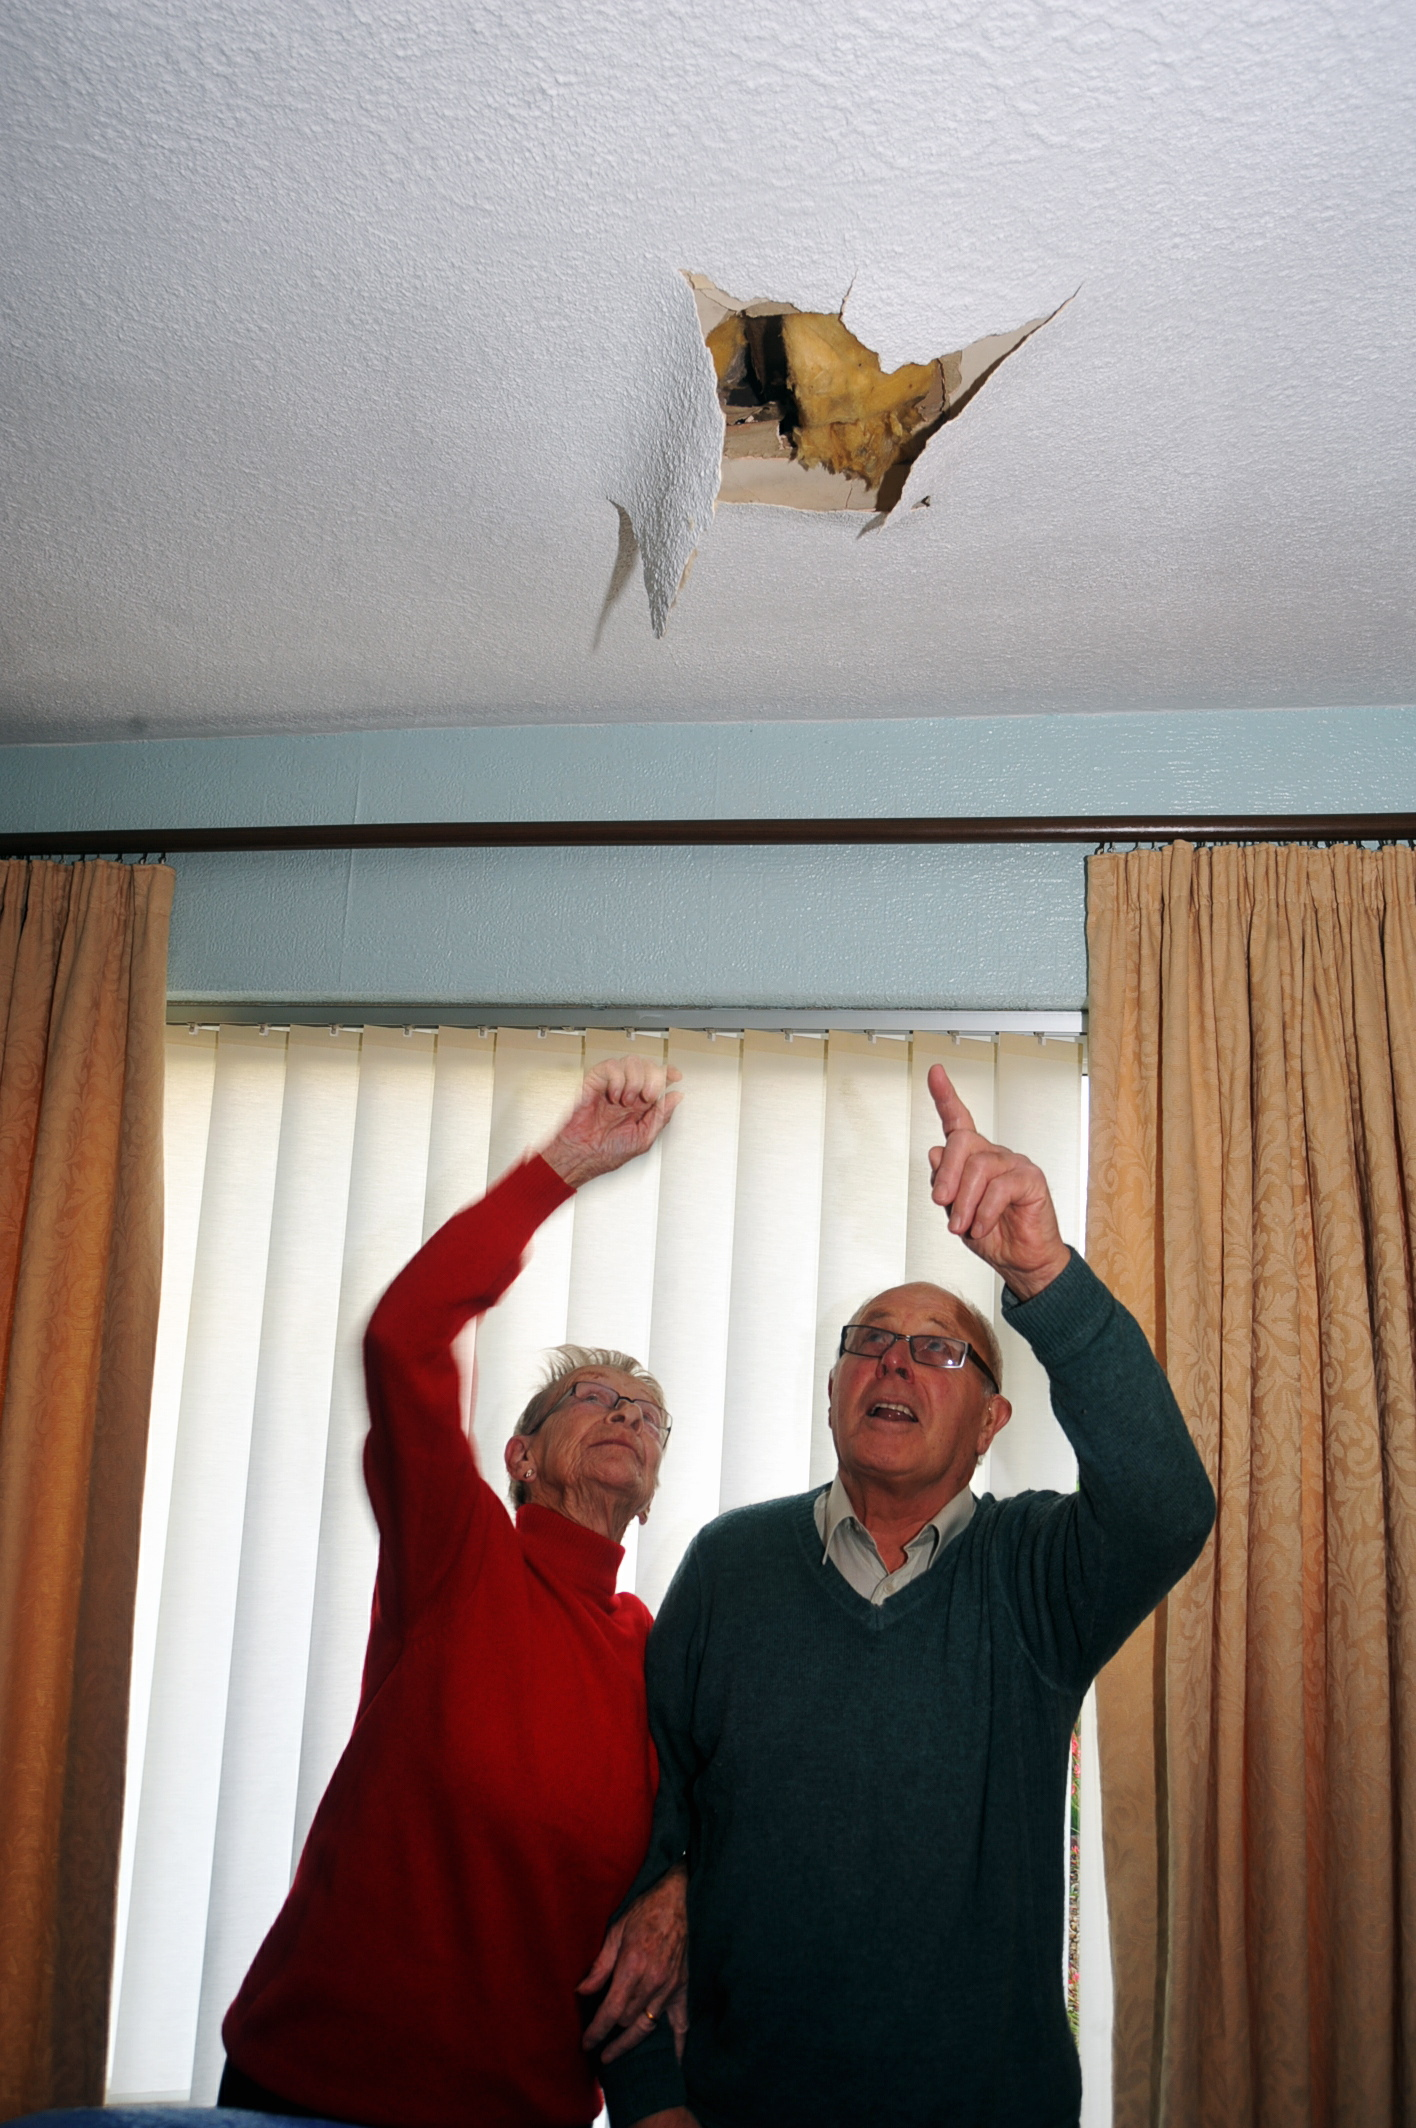 George Slade and his wife Jill had a hole in their ceiling over Christmas